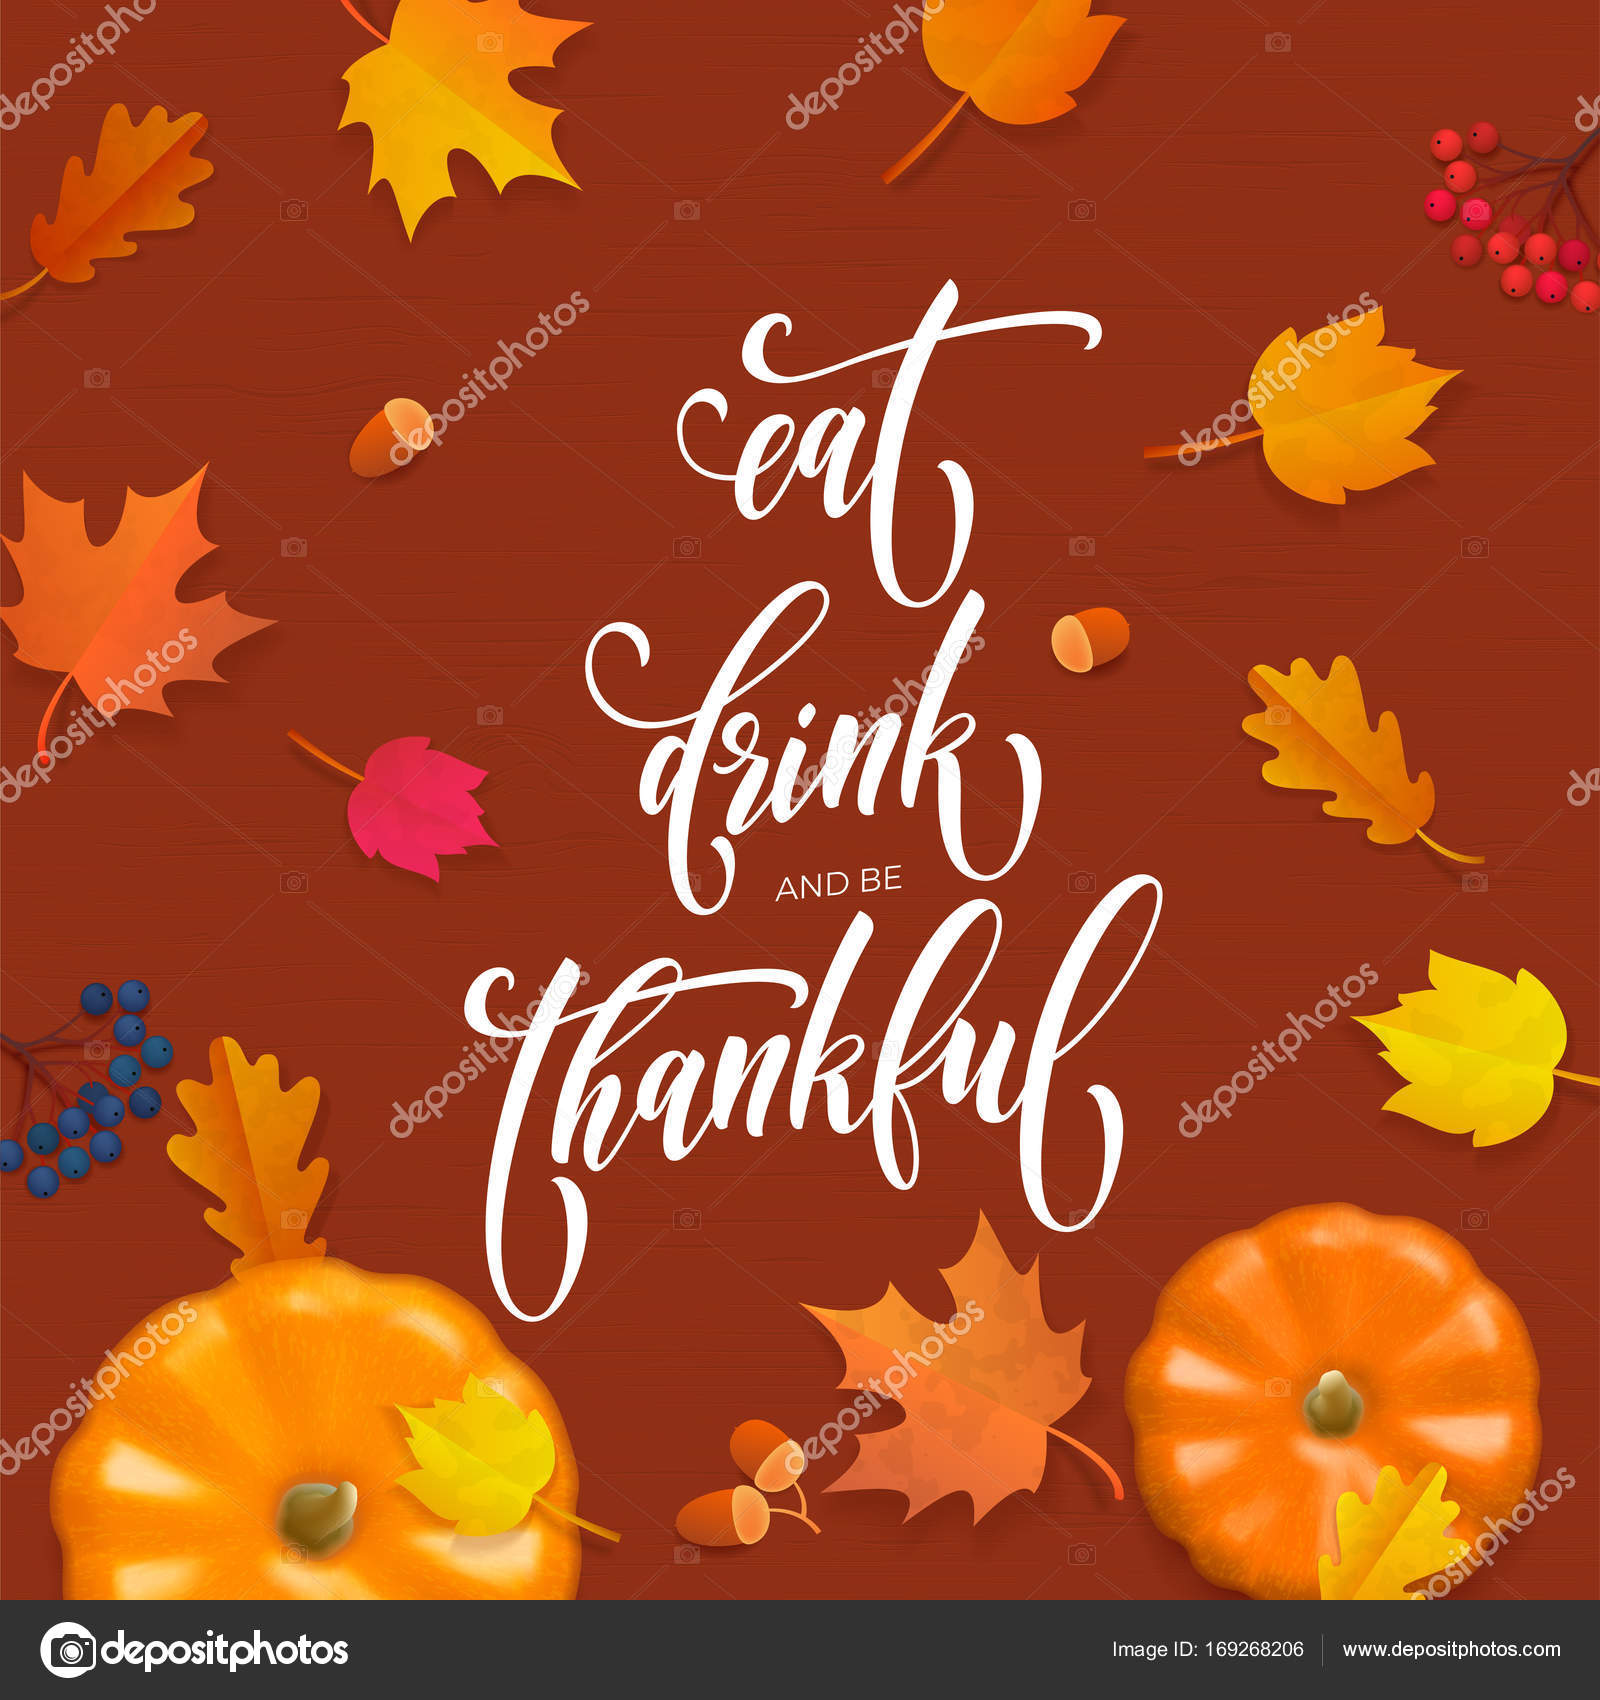 Happy Thanksgiving Holiday Autumn Fall Vector Pumpkin Calligraphy